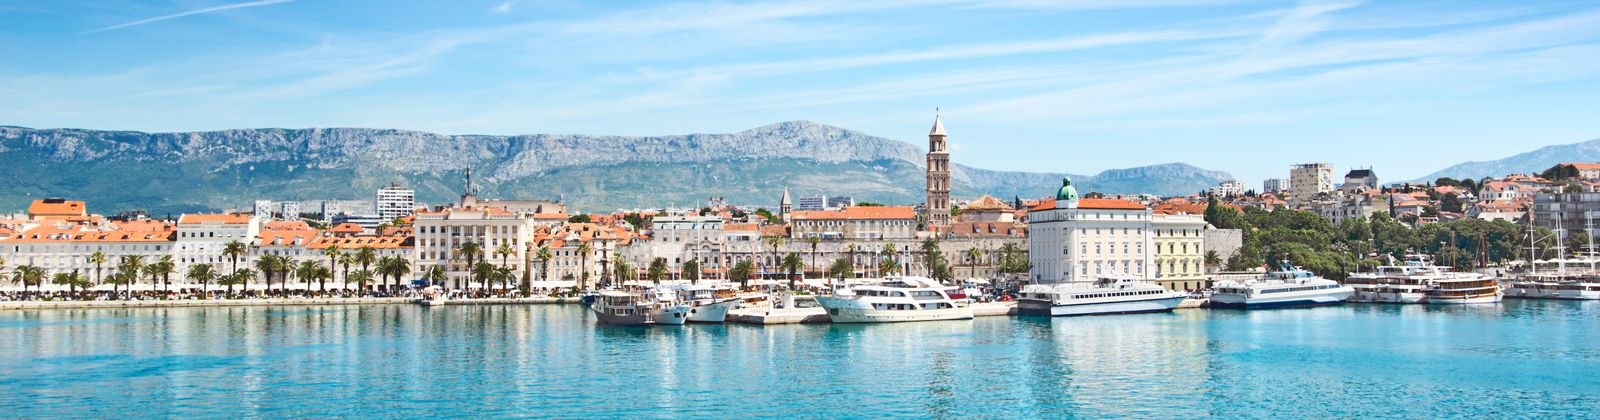 Top 15 attractions and things to do in Split